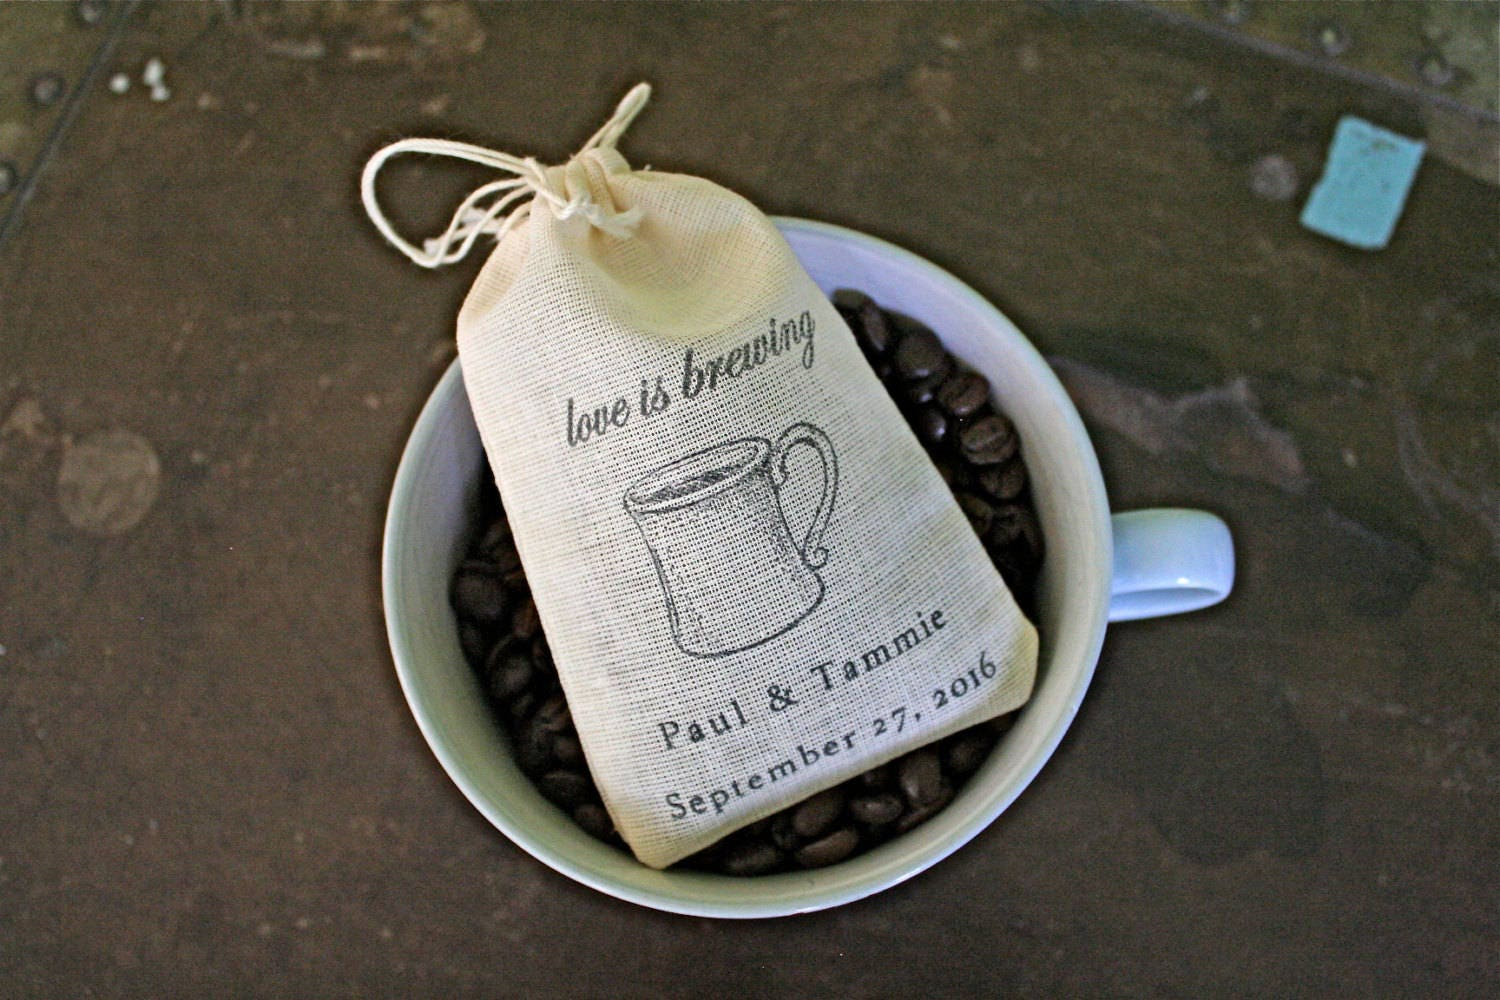 Wedding Favor Bags 10 Personalized Cotton For Coffee Or Etsy Luggage Tag Hk Love Pink